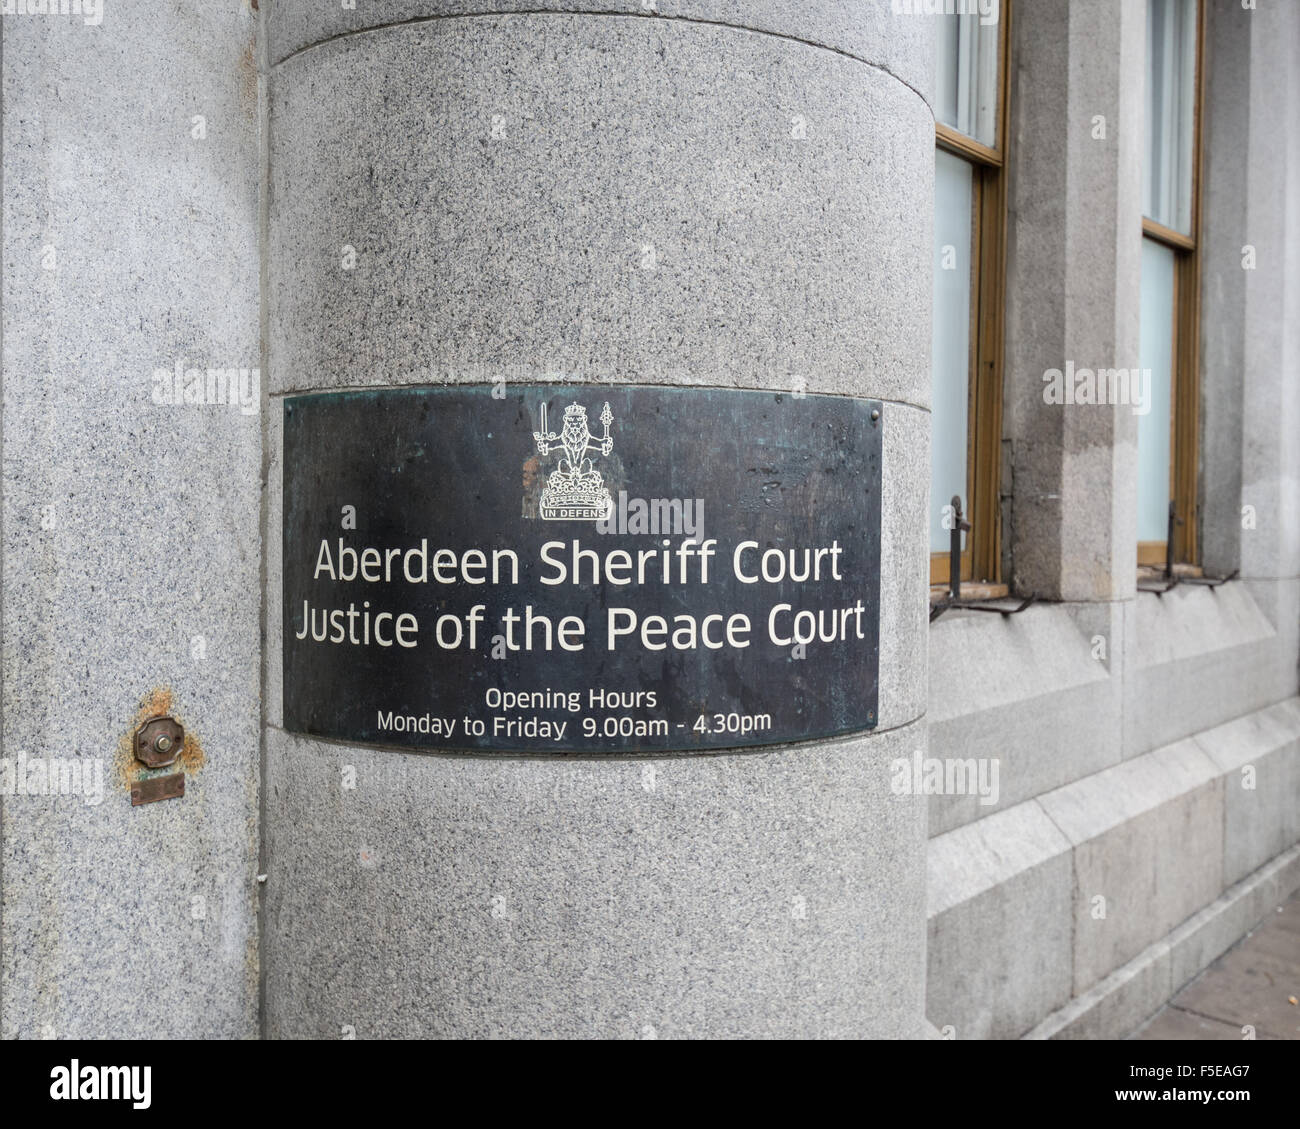 Aberdeen Sheriff Court and Justice of the Peace Court - Stock Image